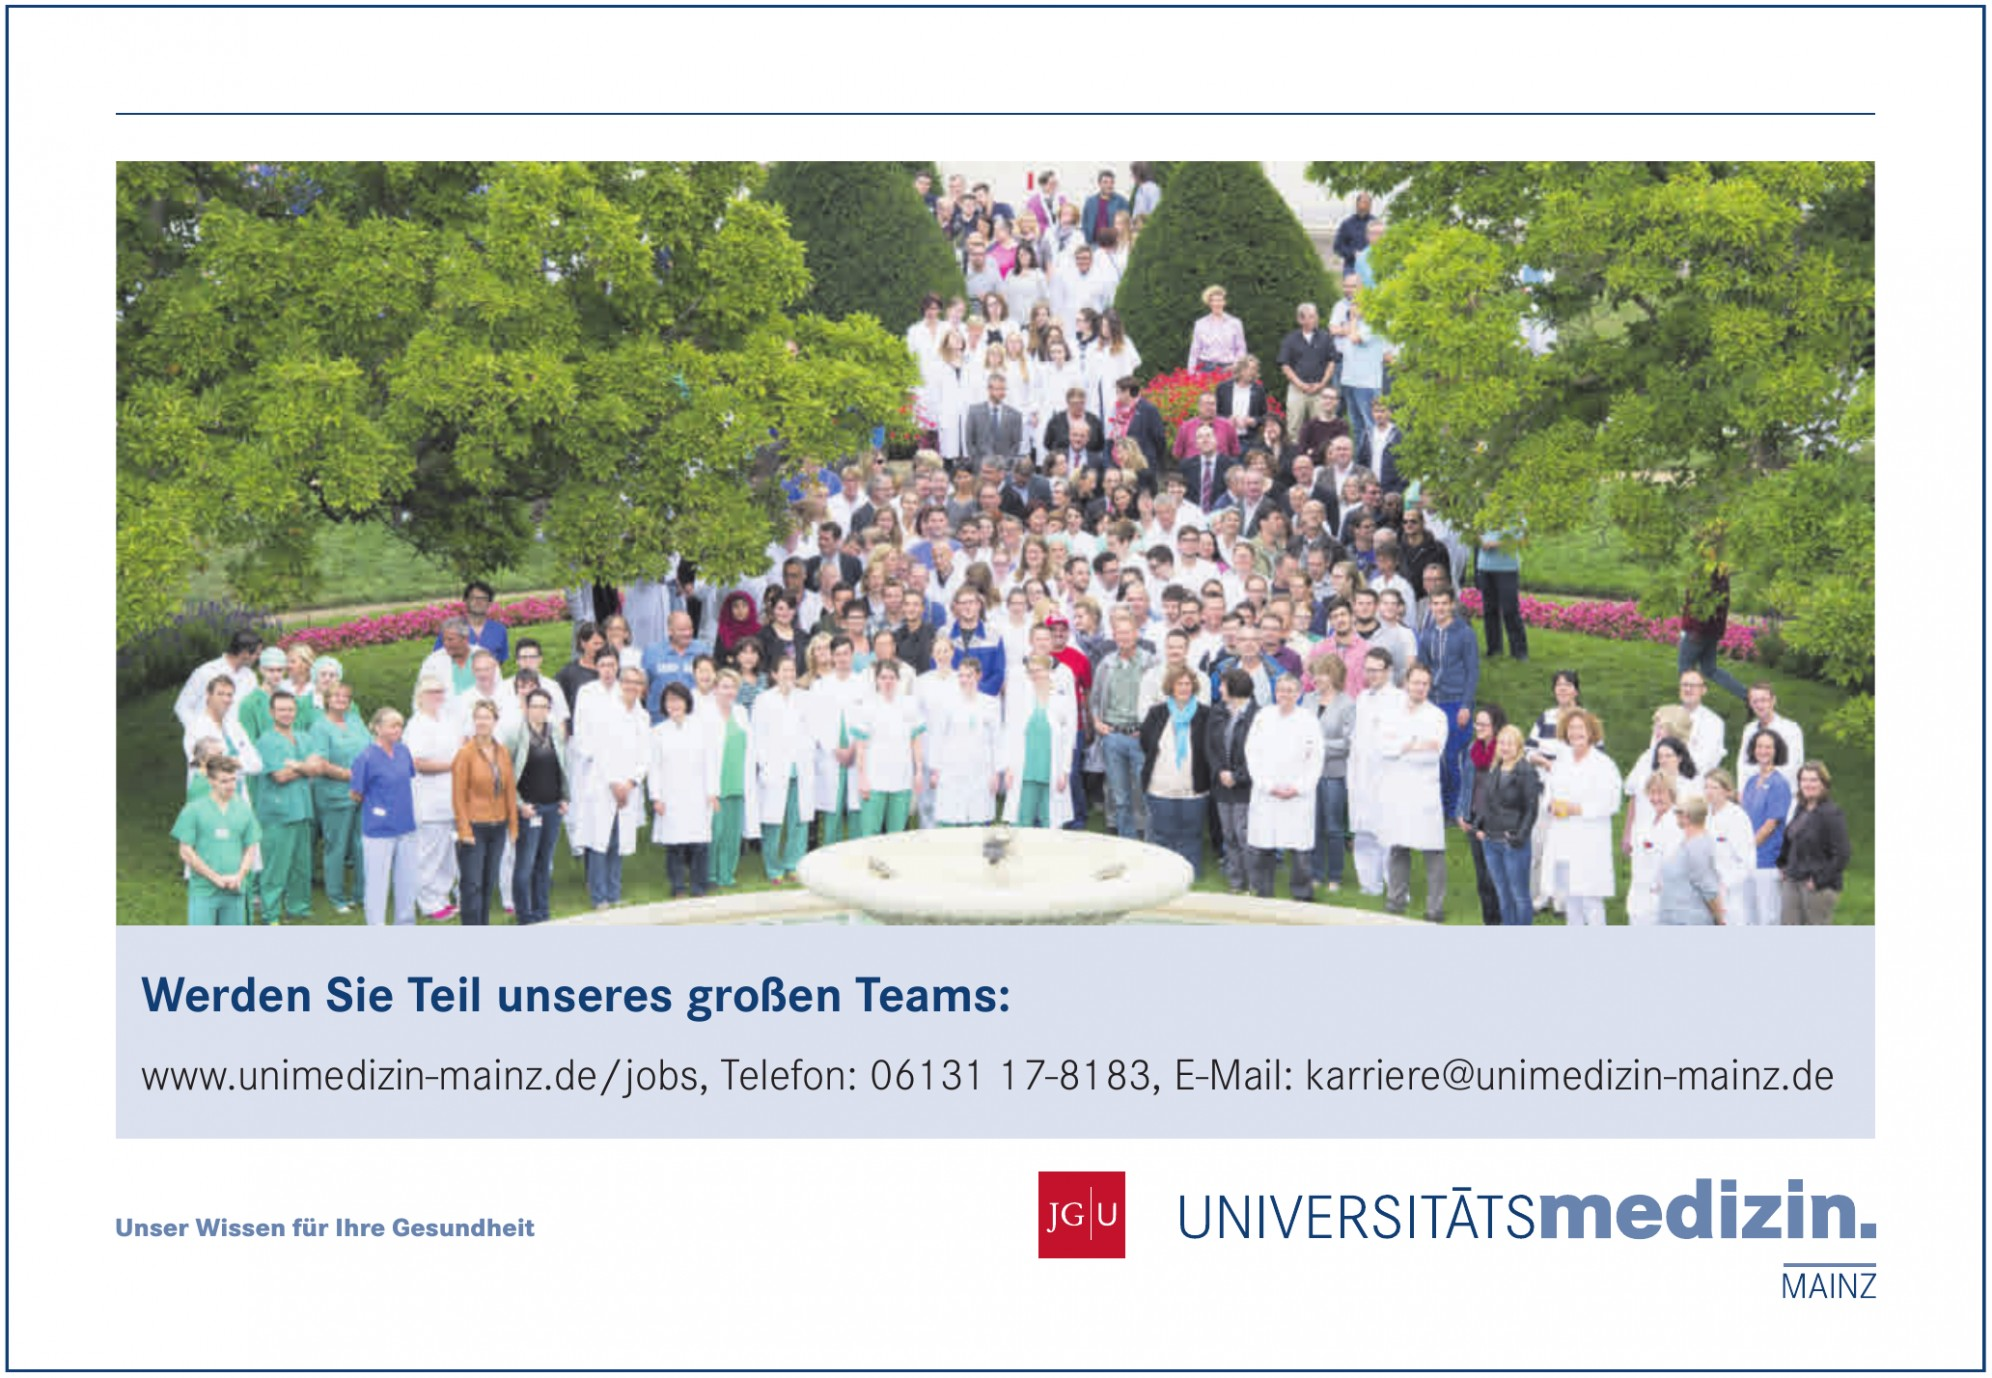 Universitätsmedizin Mainz